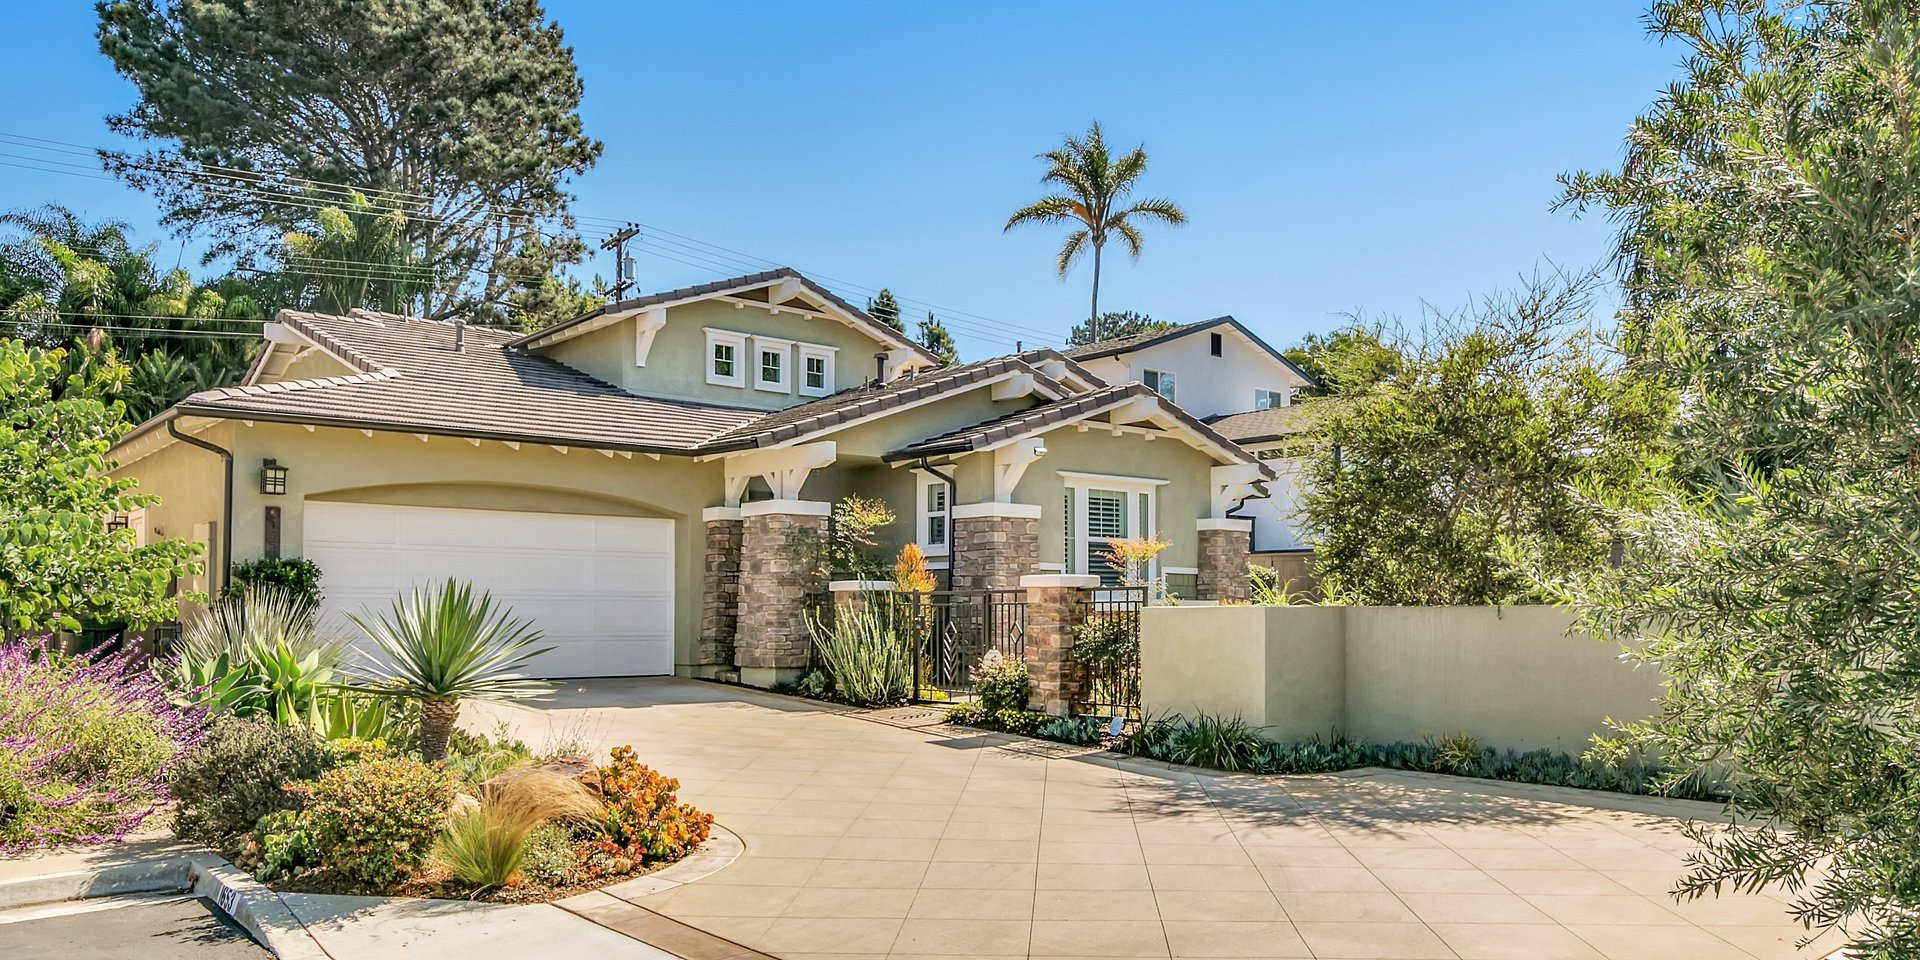 Coldwell Banker Residential Brokerage Lists Encinitas Property for $2.249 Million